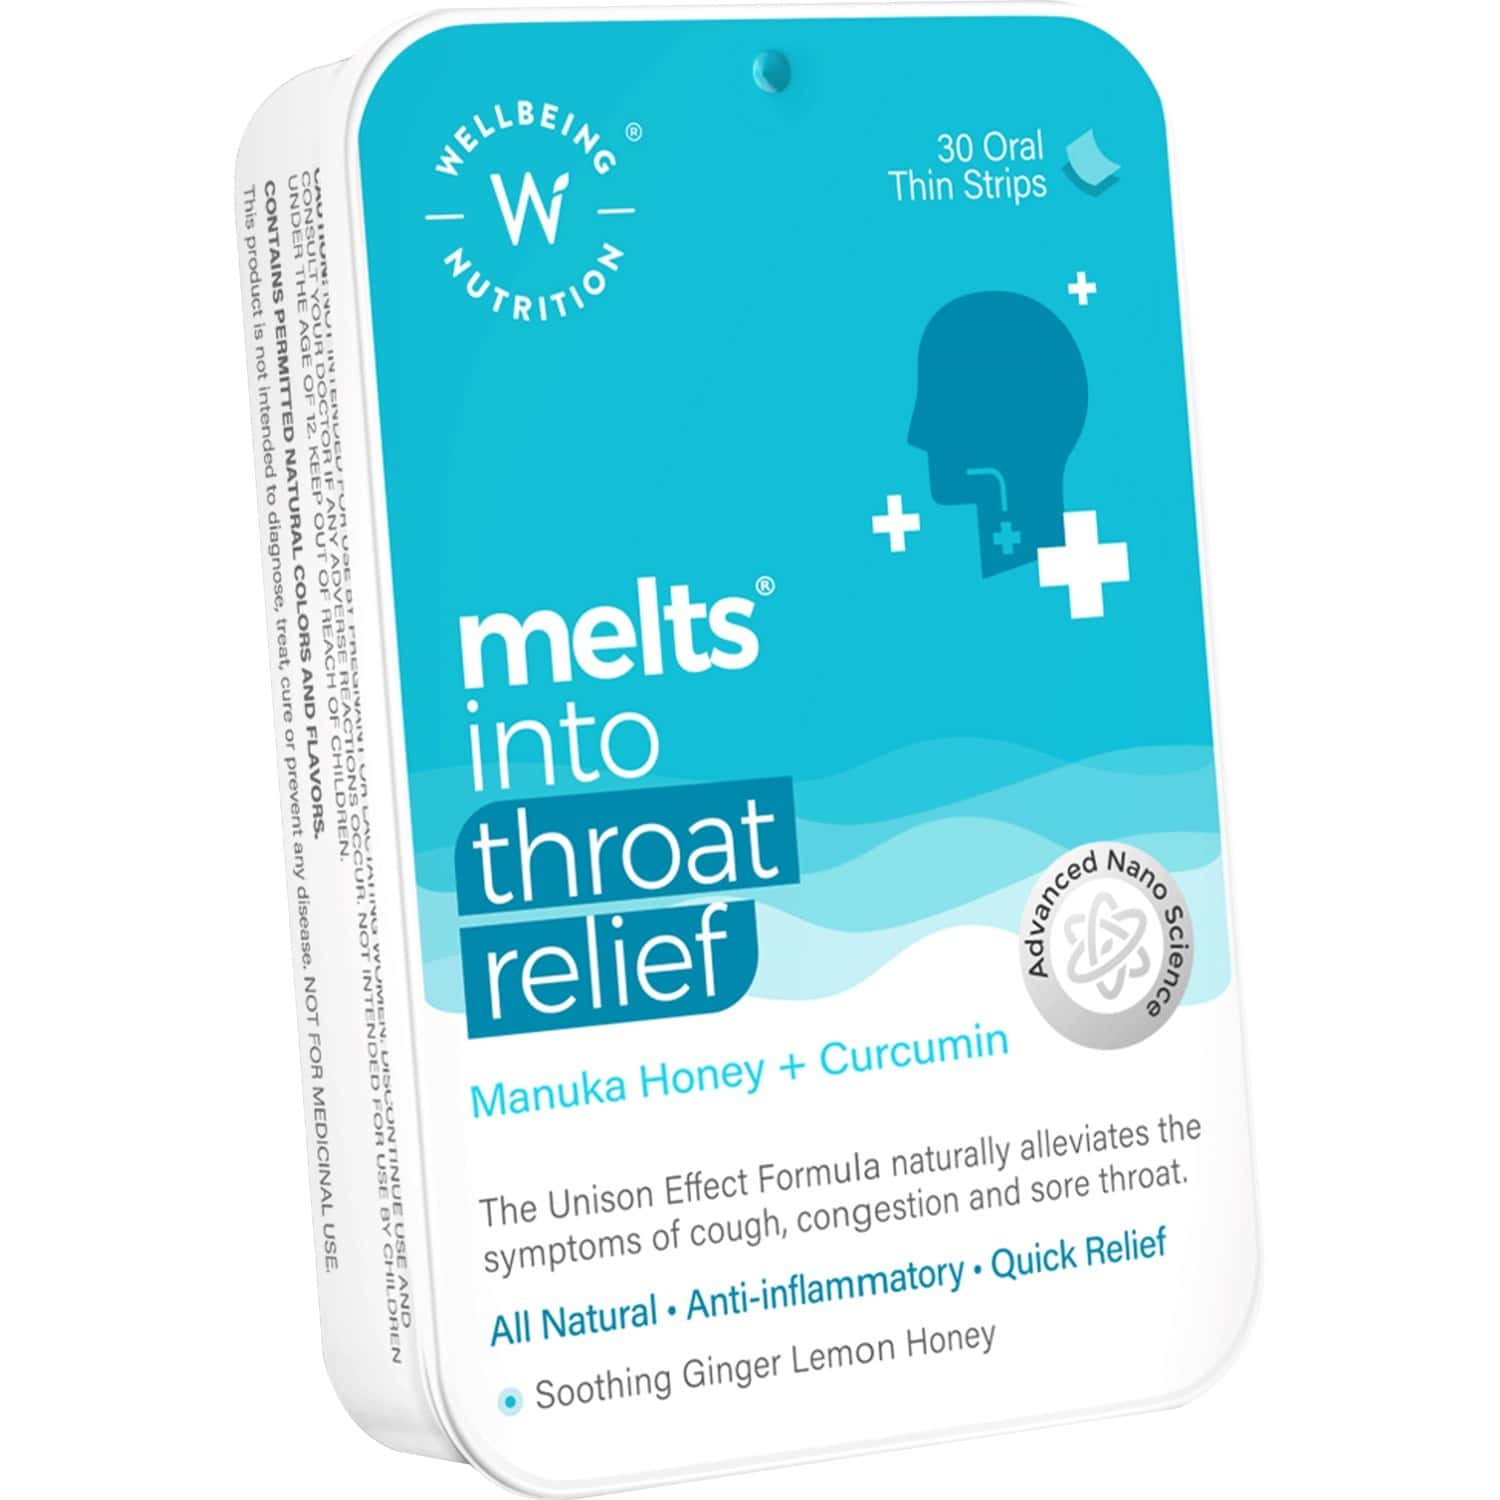 Wellbeing Nutrition Melts Instant Throat Relief - Manuka Honey+curcumin (30 Oral Strips)